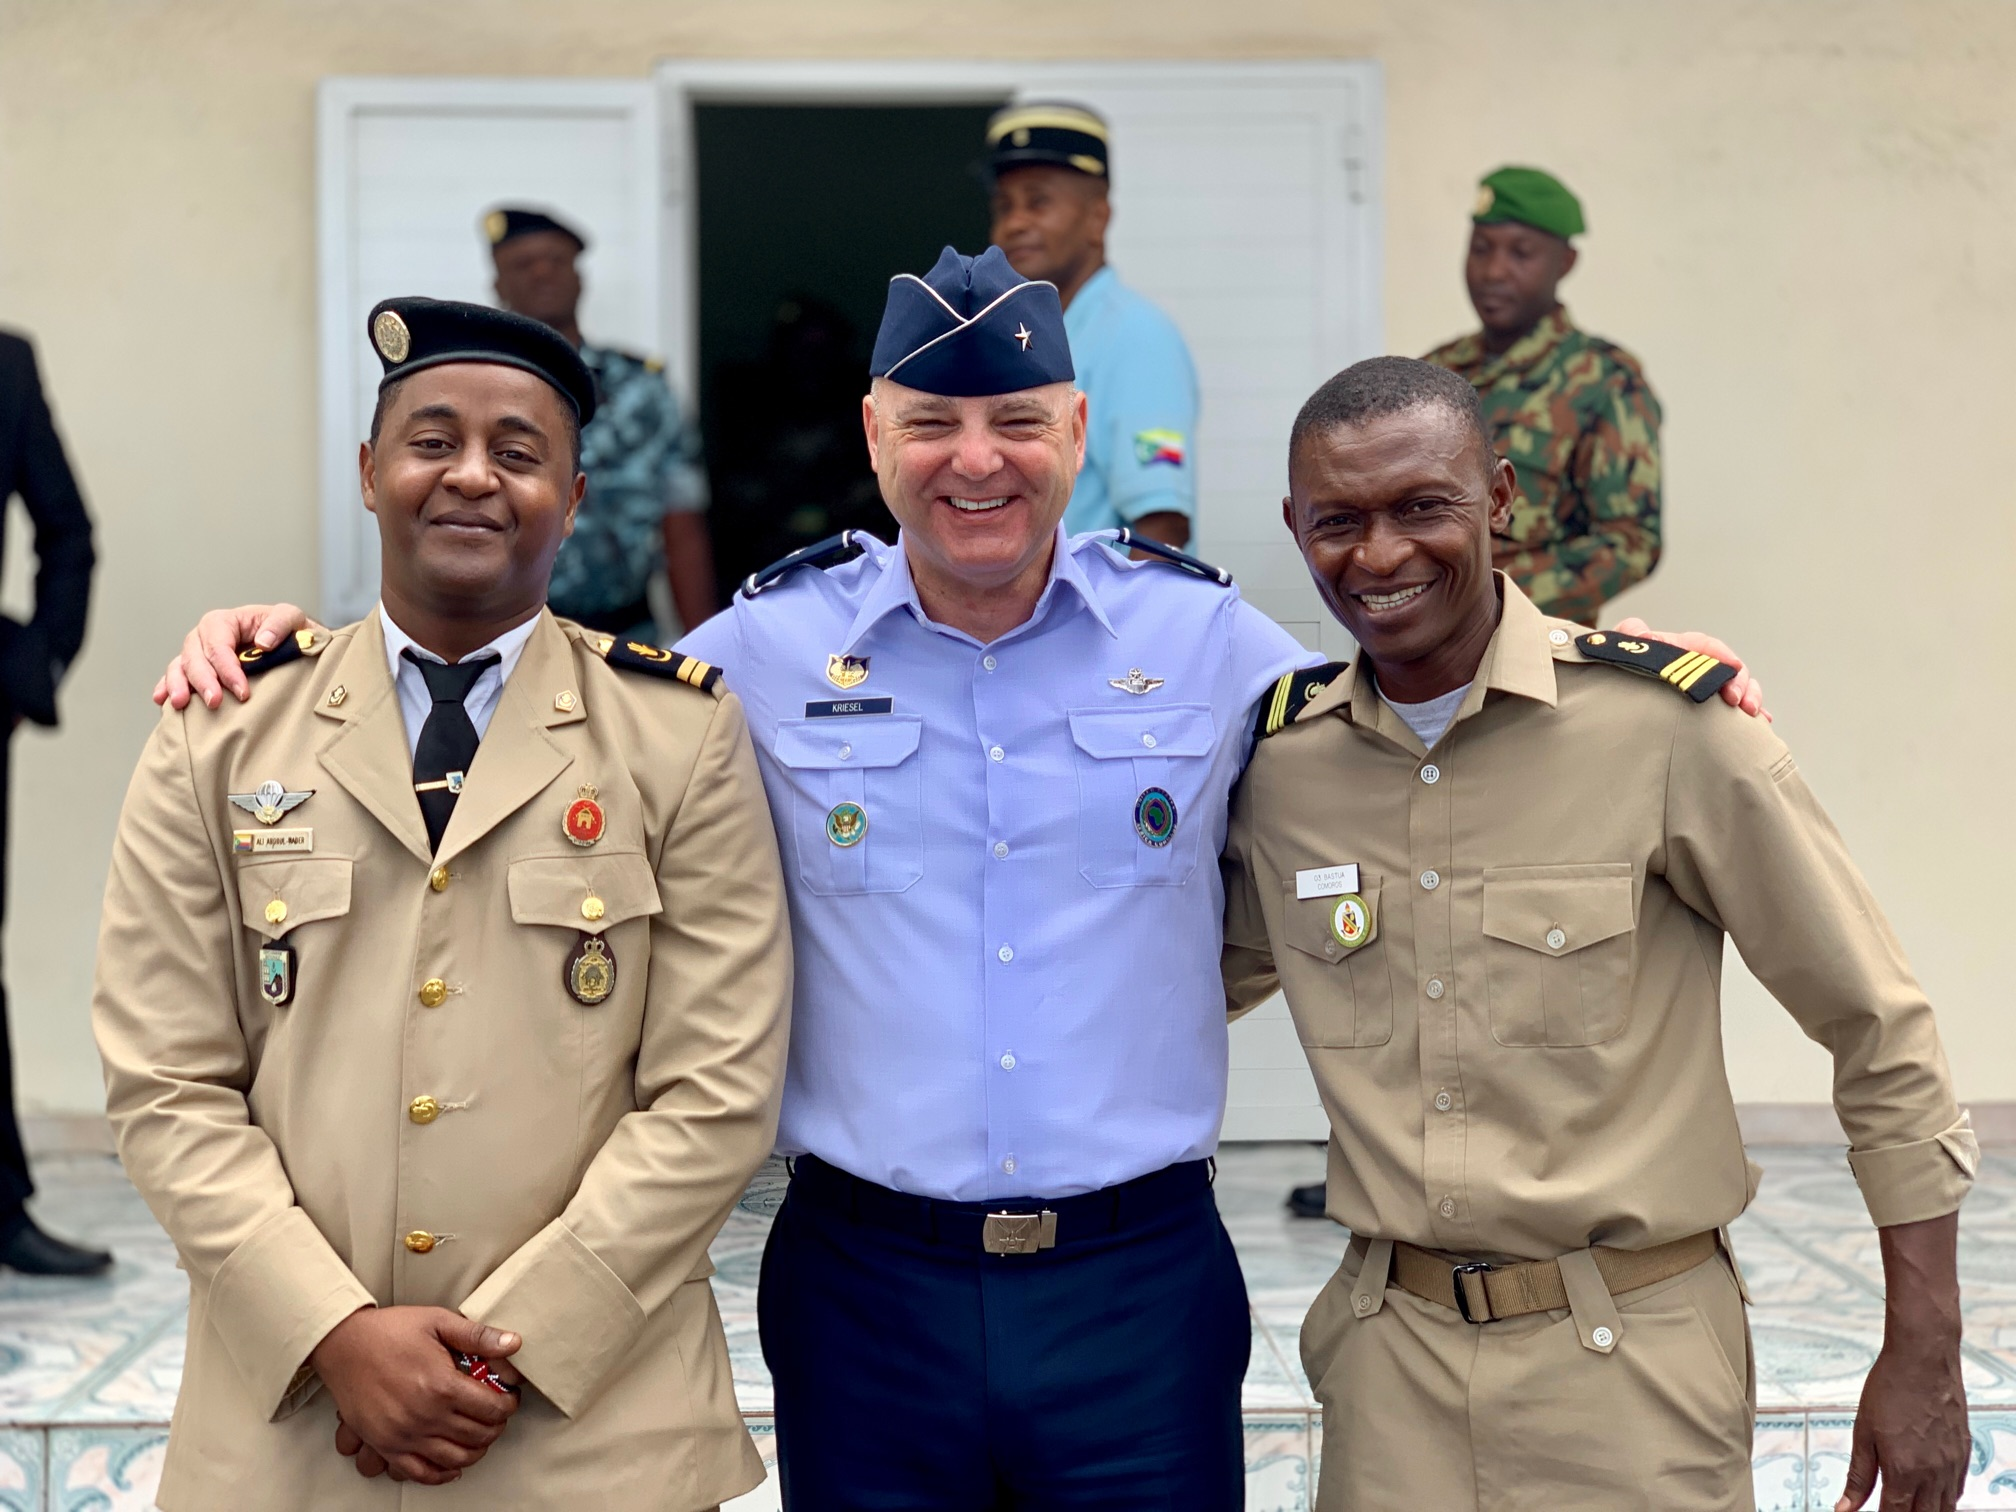 U.S. Air Force Brig. Gen. James R. Kriesel, deputy commanding general of Combined Joint Task Force-Horn of Africa (CJTF-HOA), poses for a photo with Comoros Lt. Ali Abdoul-Kader, Comoros foreign liaison officer (FLO) to CJTF-HOA, left, and Comoros Capt. Bastua, a previous Comoros FLO to CJTF-HOA, at the Enfag language school in Comoros, Sept. 9, 2019. Kriesel visited Comoros to conduct country familiarization and key leader engagements. (Courtesy photo by U.S. Army Maj. Judith Griep)